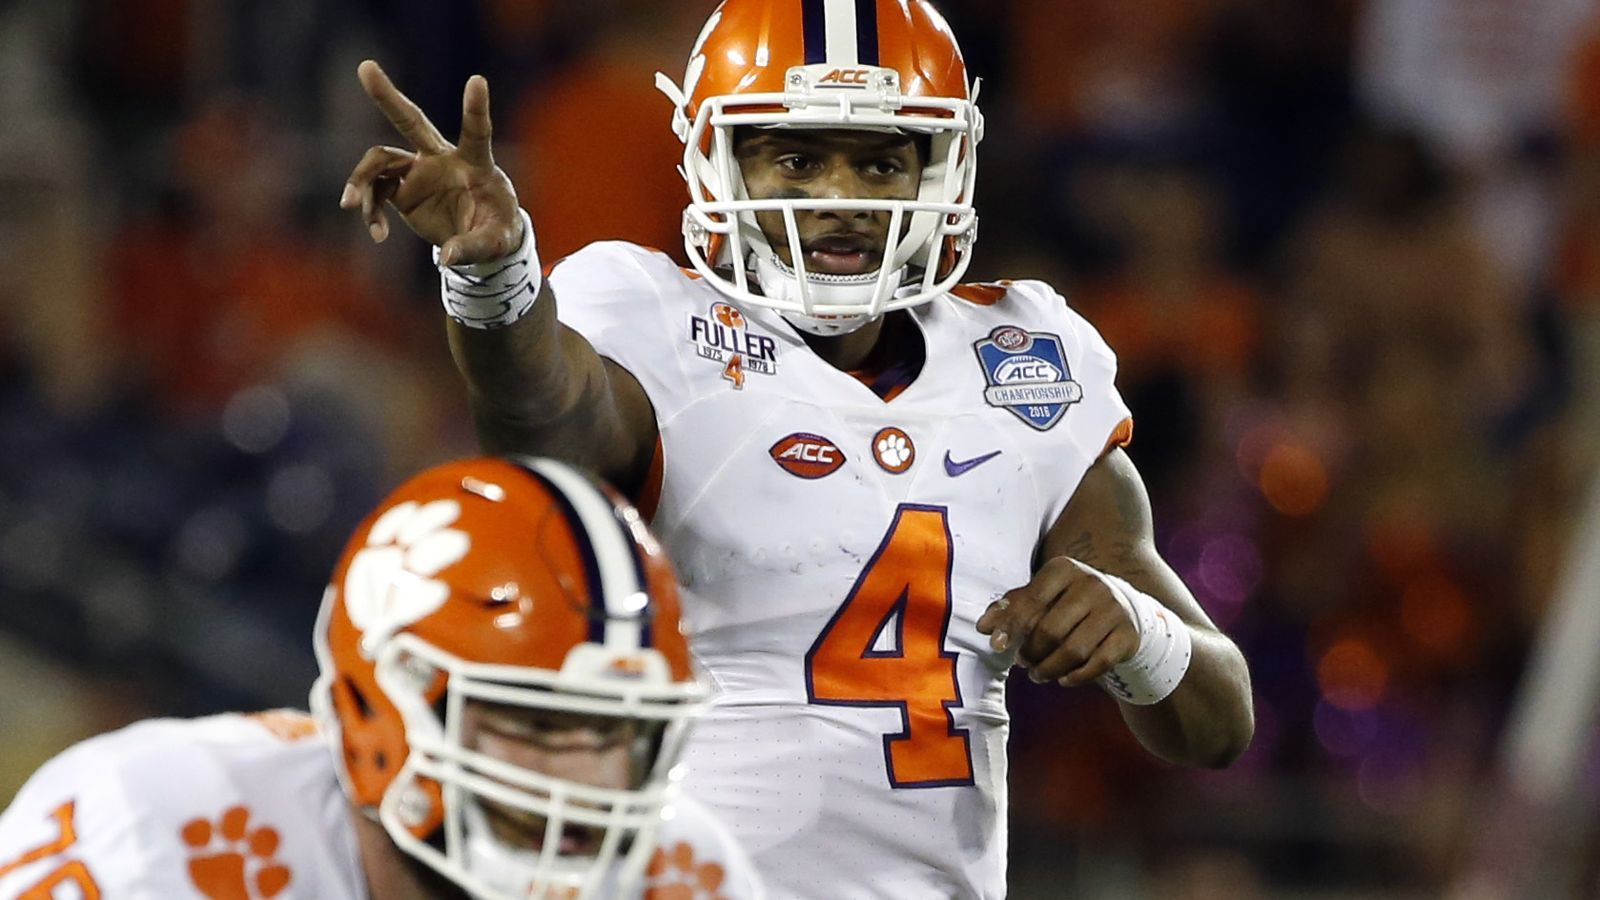 Clemson beats Virginia Tech to win the ACC and punch its